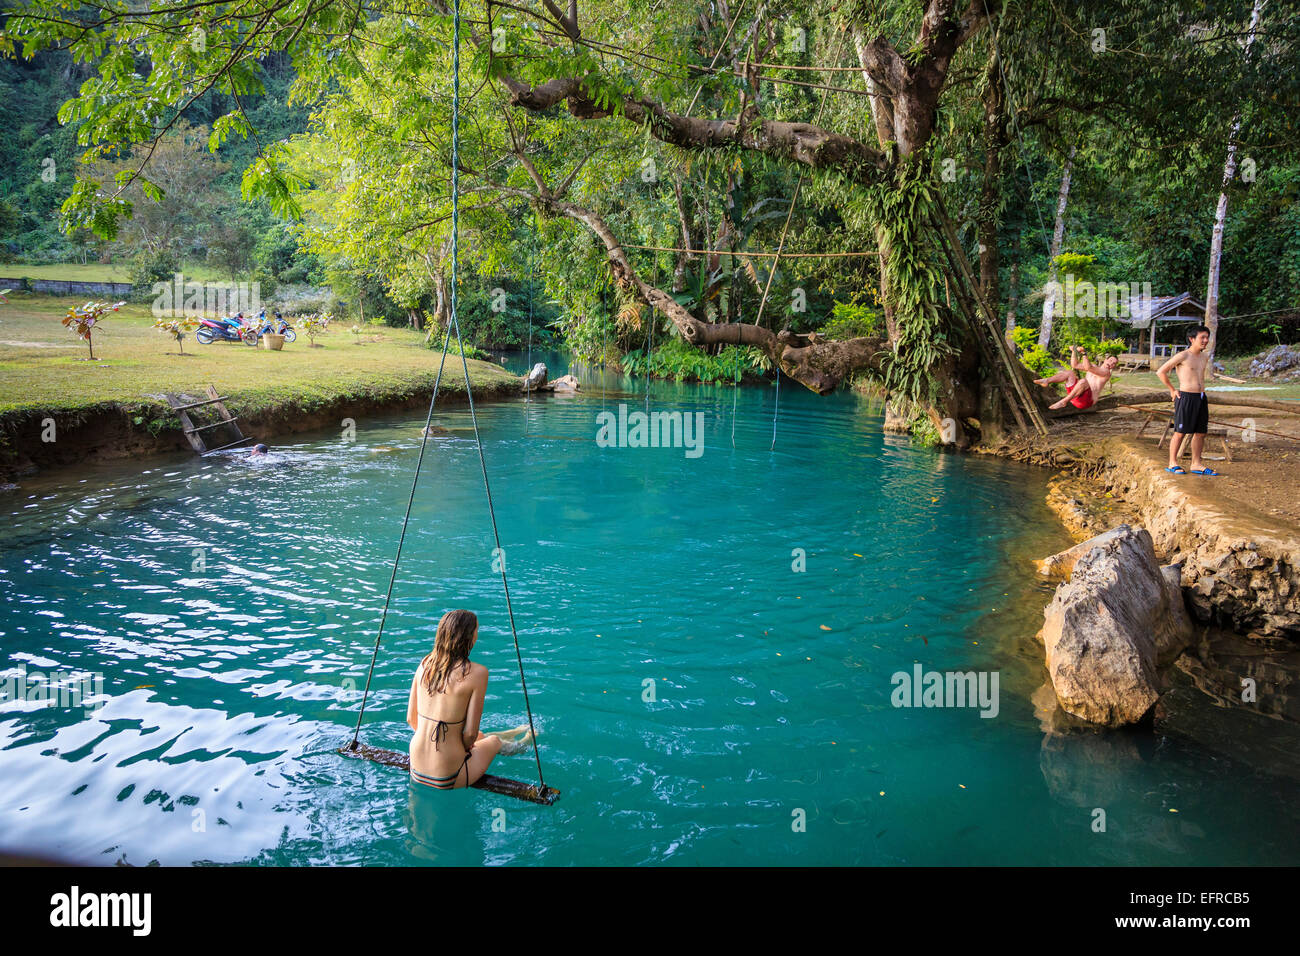 Woman On A Swing In The Blue Lagoon Vang Vieng Laos Stock Photo Alamy